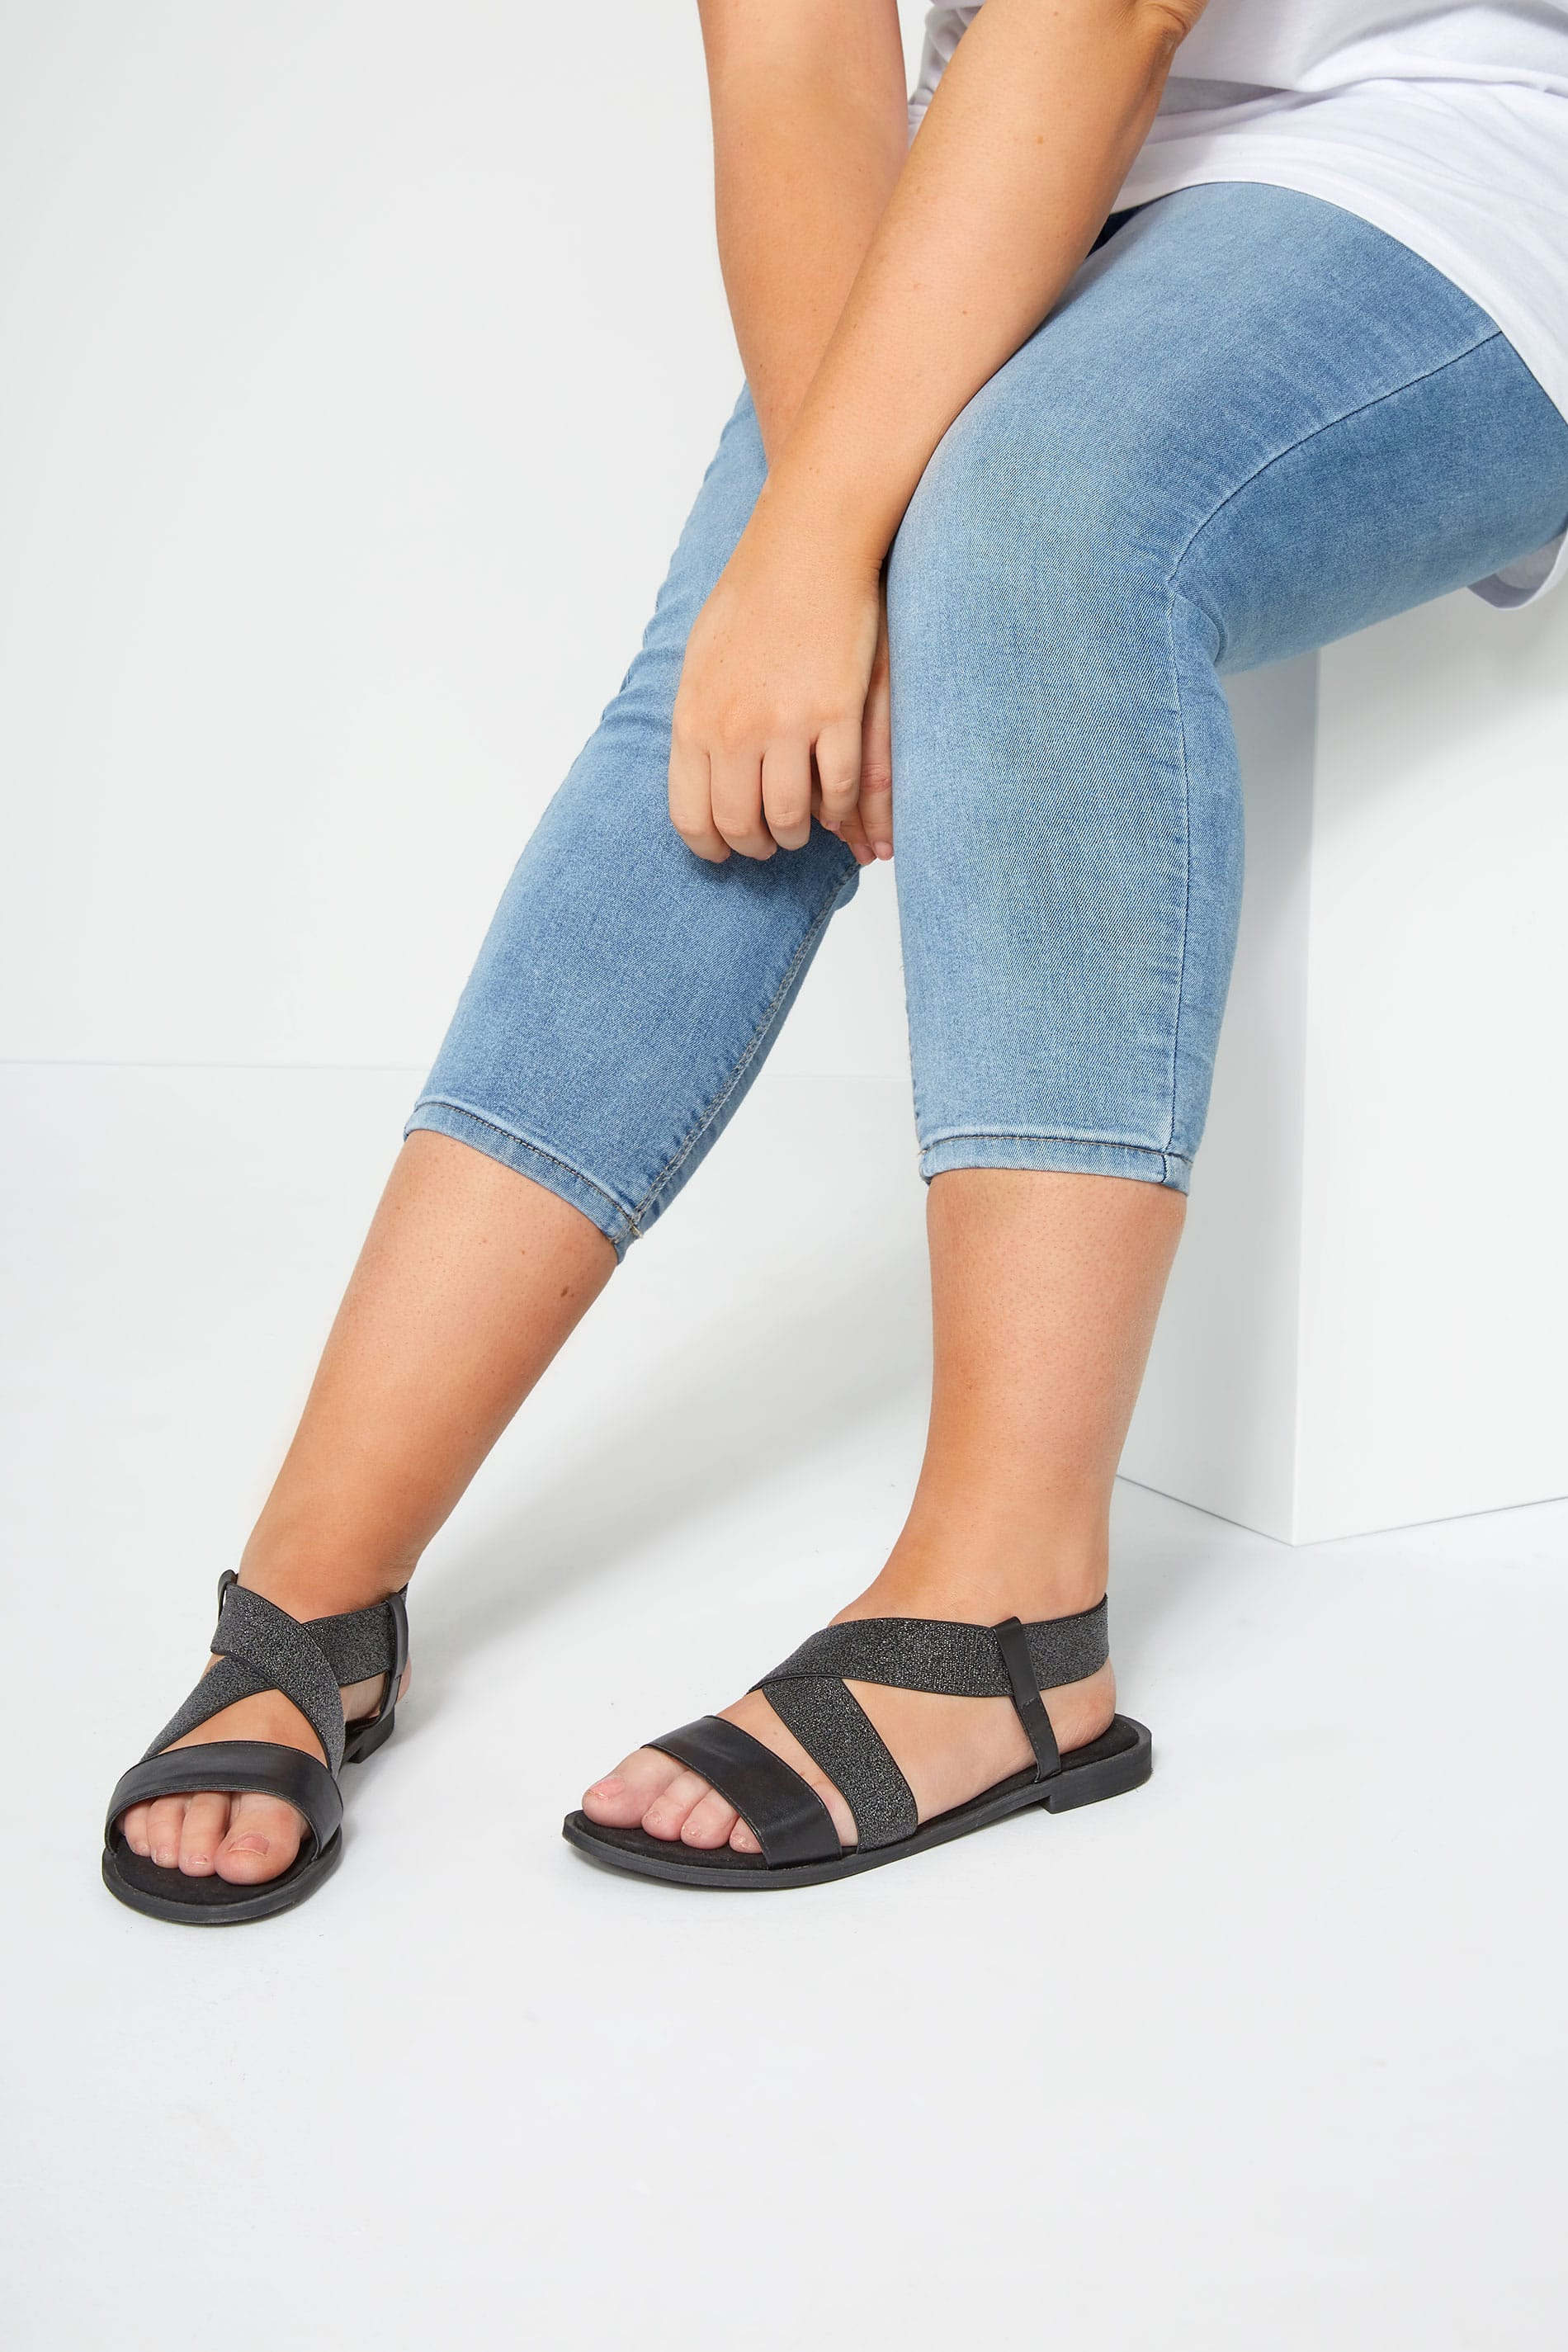 Black Shimmer Elastic Sandals In Extra Wide Fit